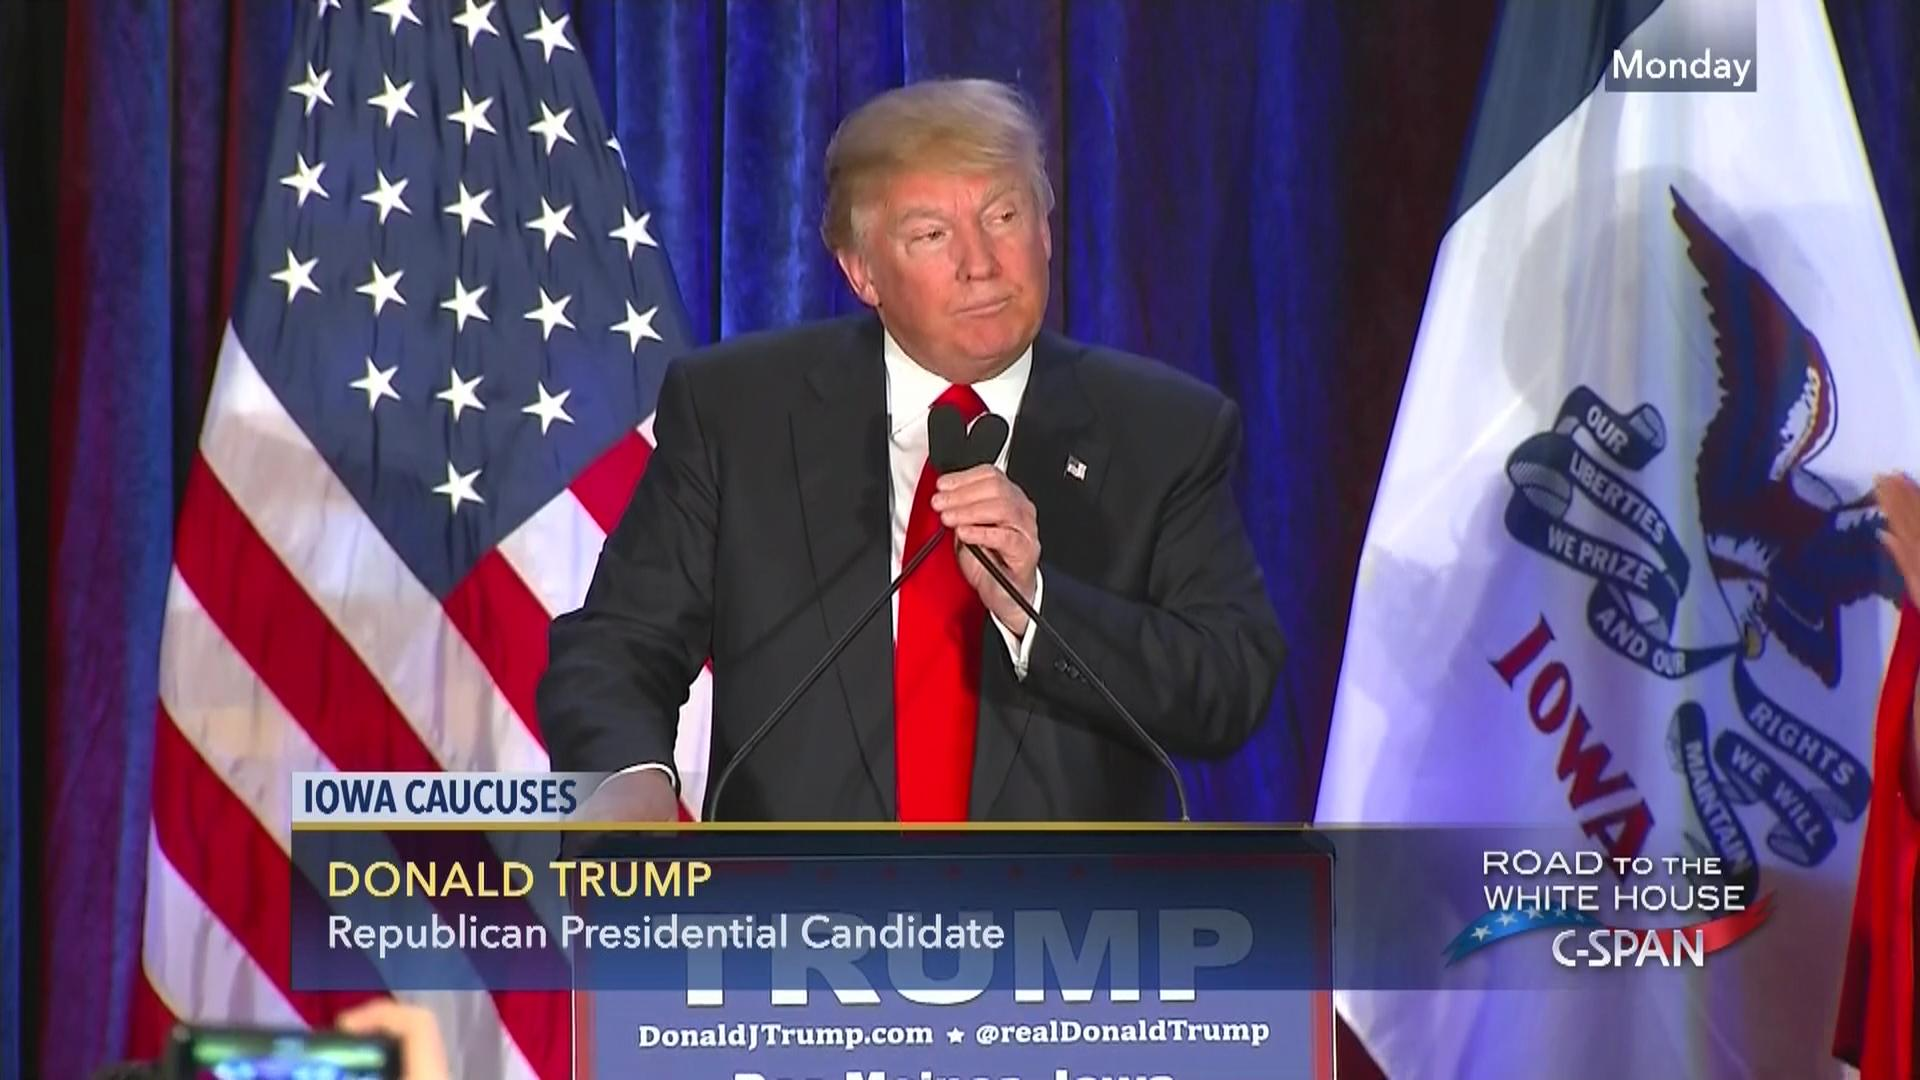 Donald Trump Caucus Night Speech   Video   C SPAN org C Span